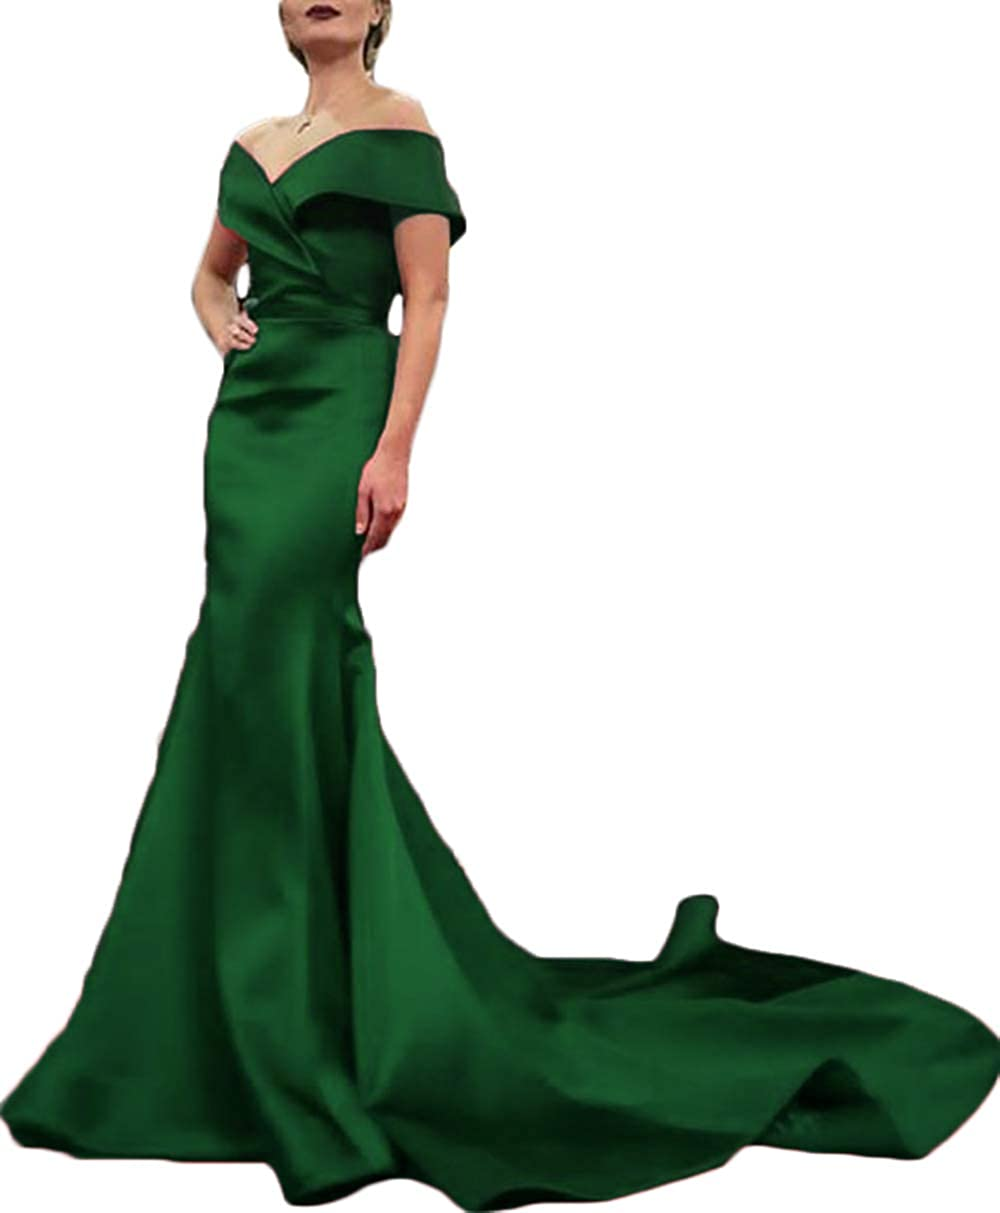 Emerald Green Rmaytiked Womens Off The Shoulder Mermaid Prom Dresses Long 2019 Elegant Satin Formal Evening Ball Gowns